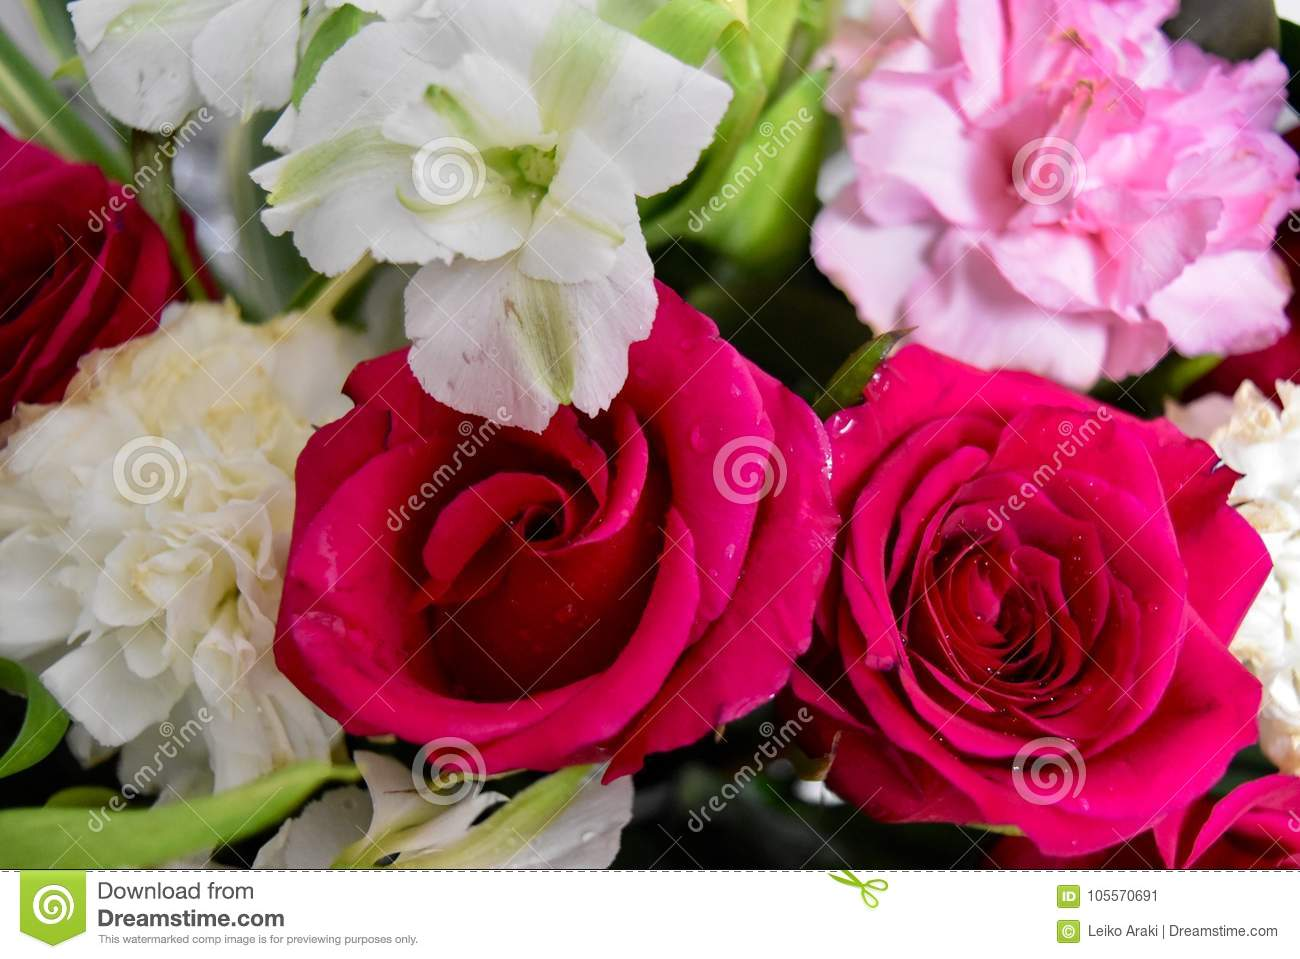 Flowers Two Colors Red And White Roses Stock Image - Image of ...